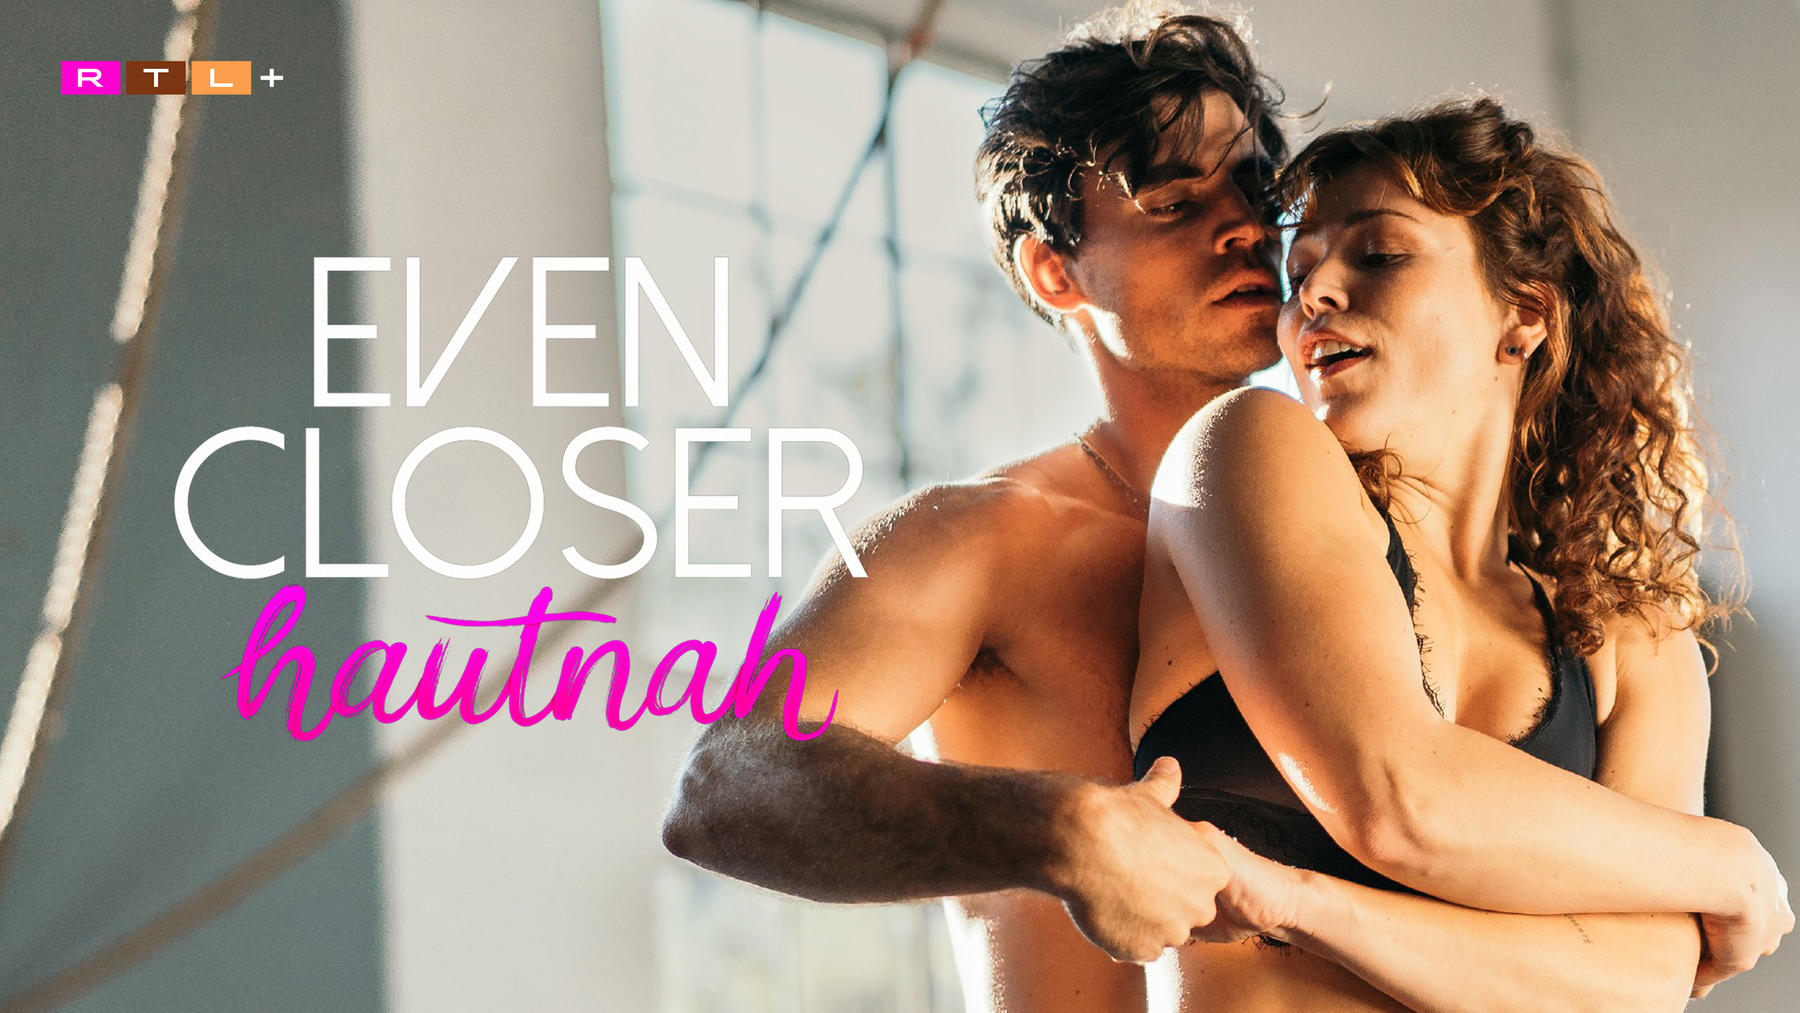 Even Closer - Hautnah